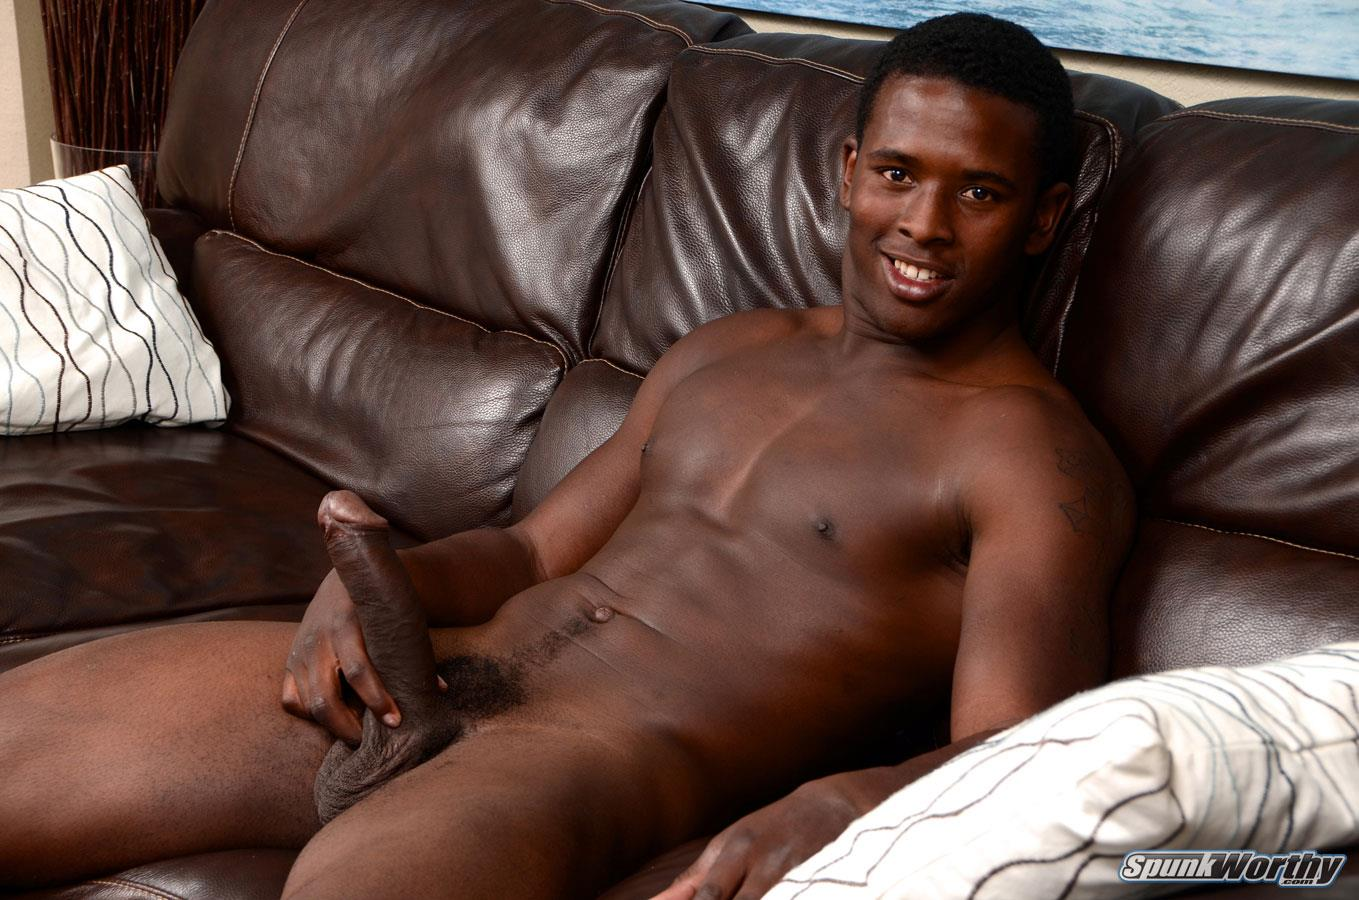 SpunkWorthy Heath Naked College Football Player Stroking His Big Black Cock Amateur Gay Porn 05 Straight College Football Player Jerking His Big Uncut Black Cock